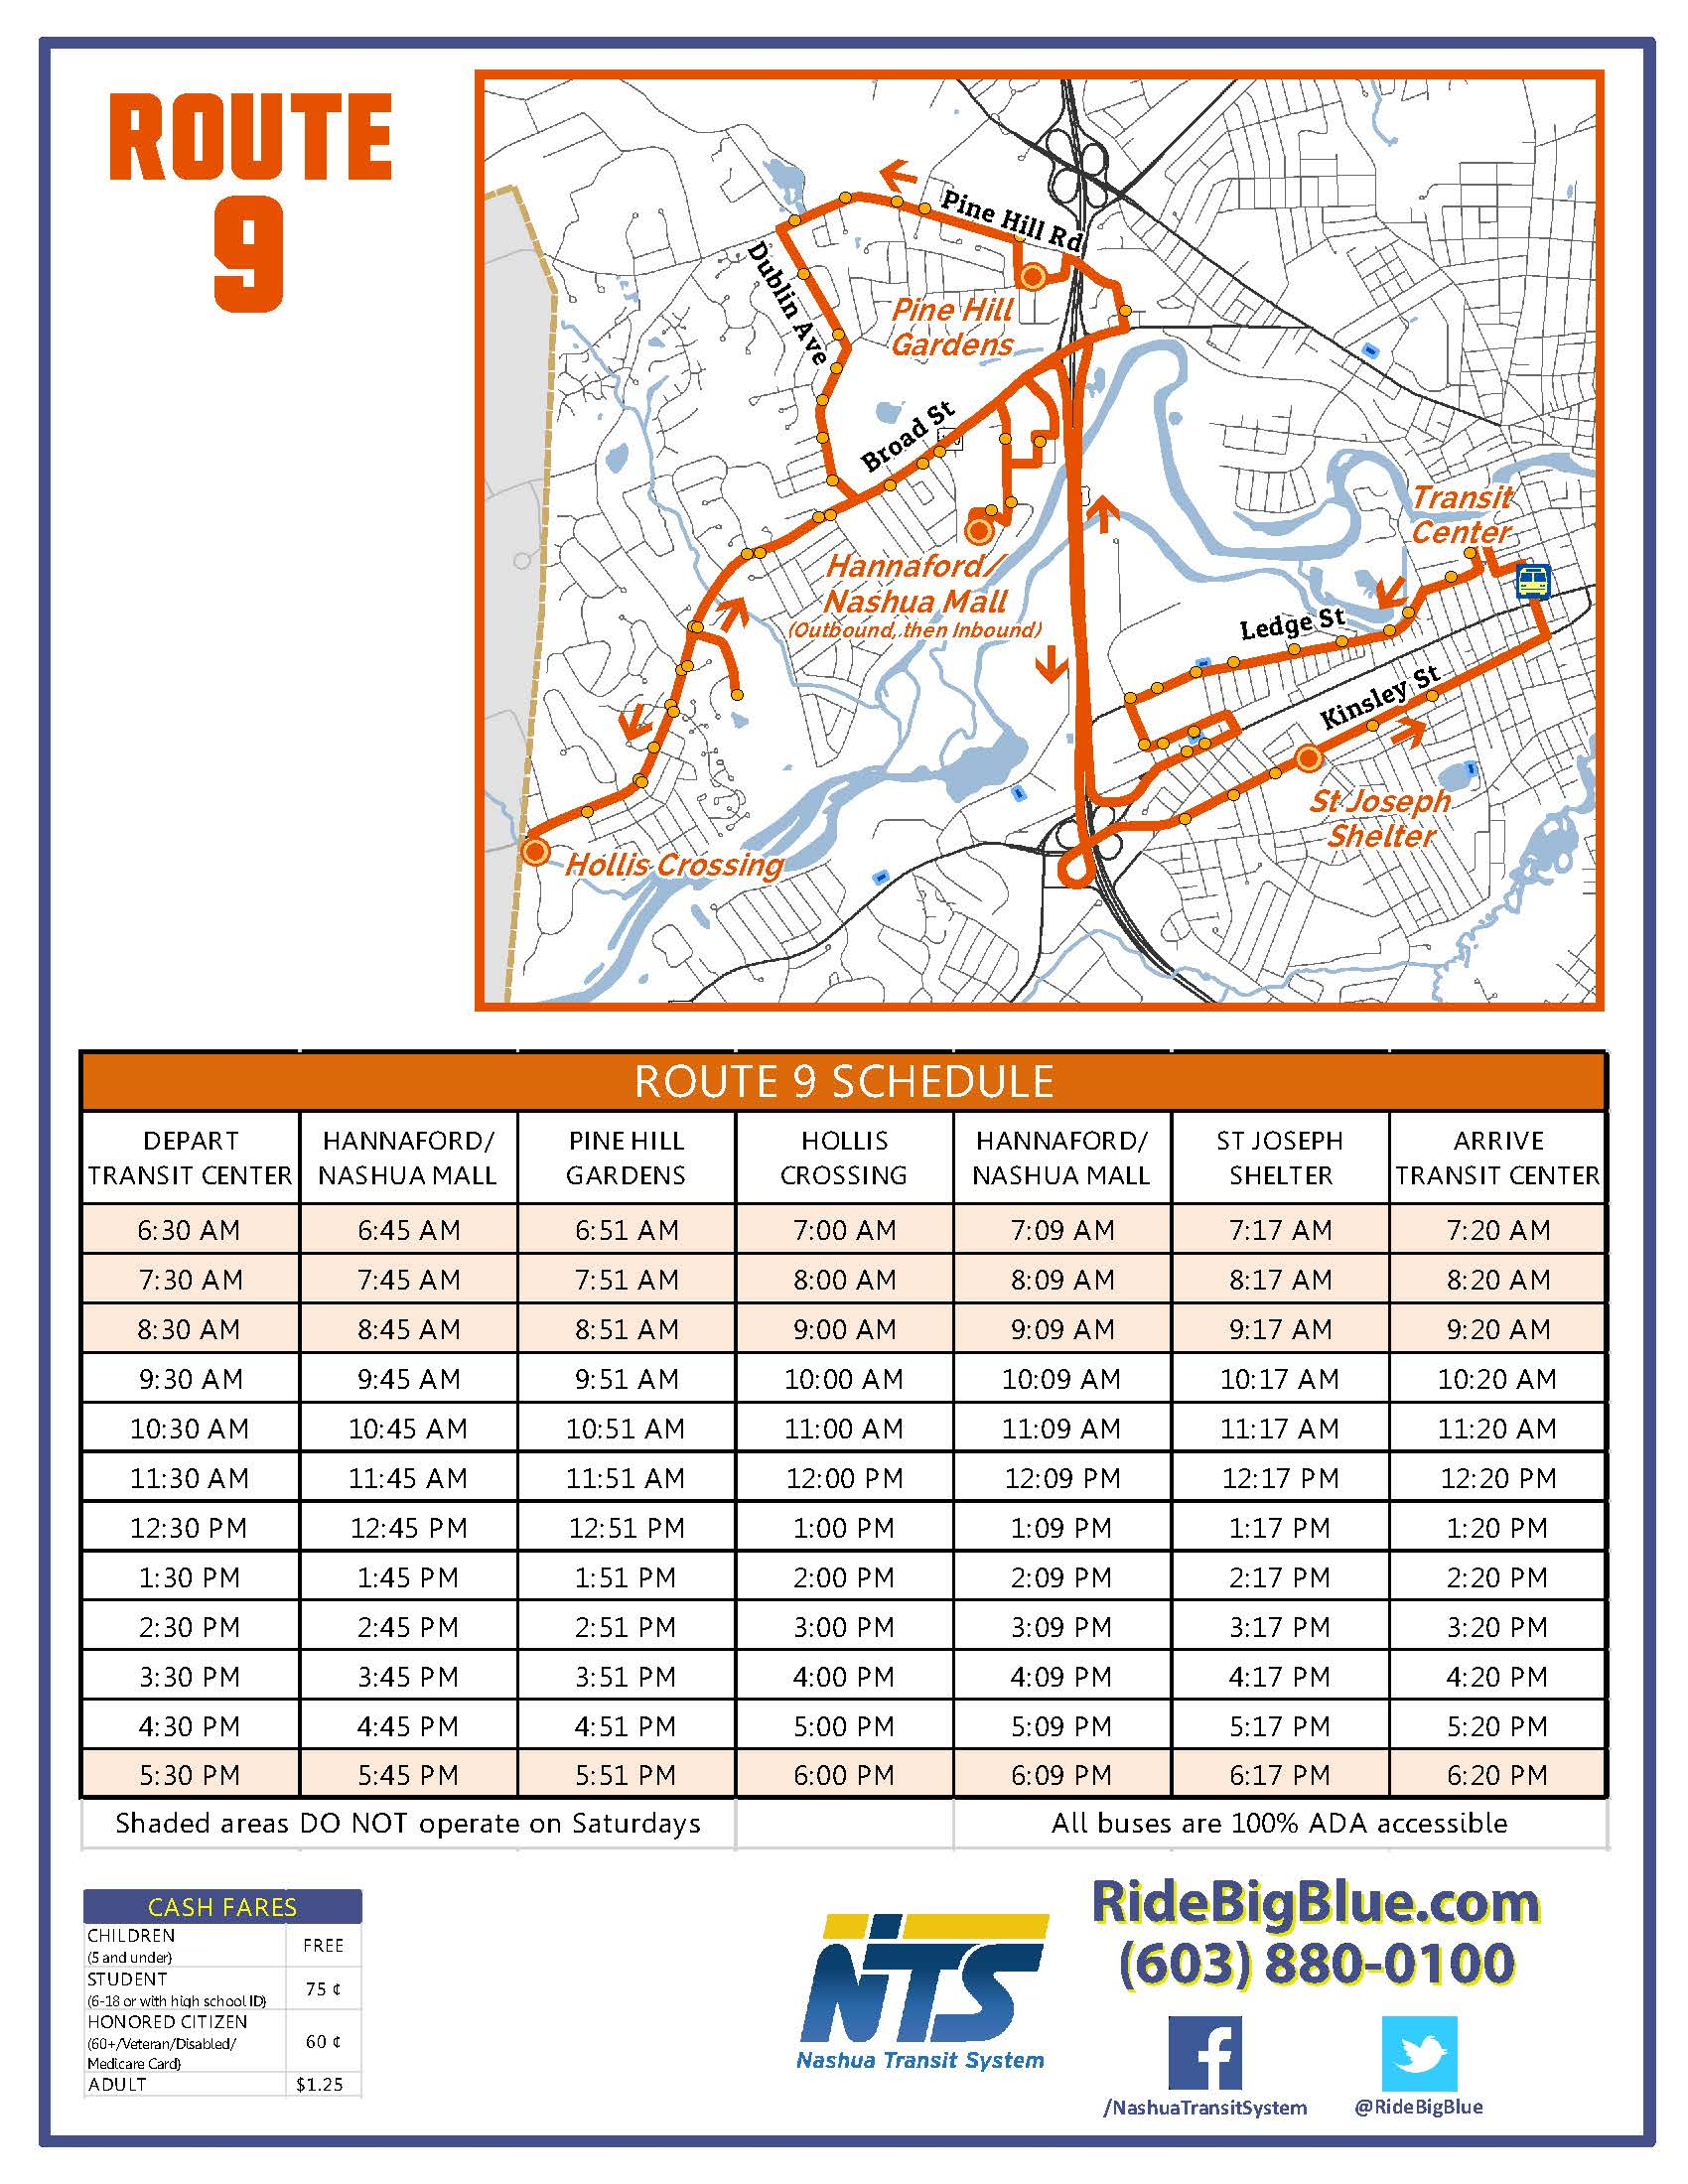 Route 9 Map & Schedule